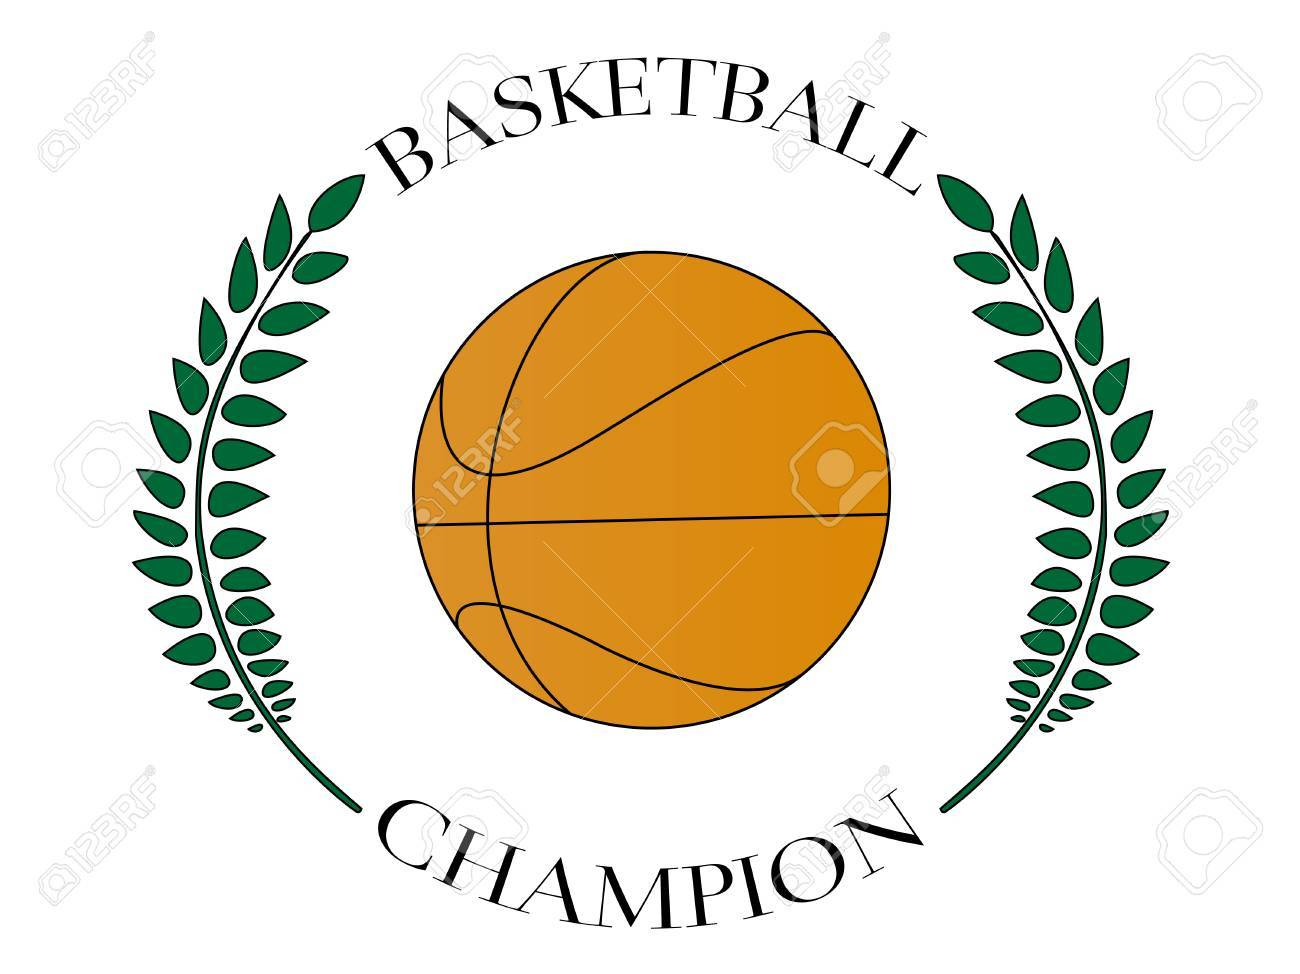 34351490-basketball-champion-3.jpg